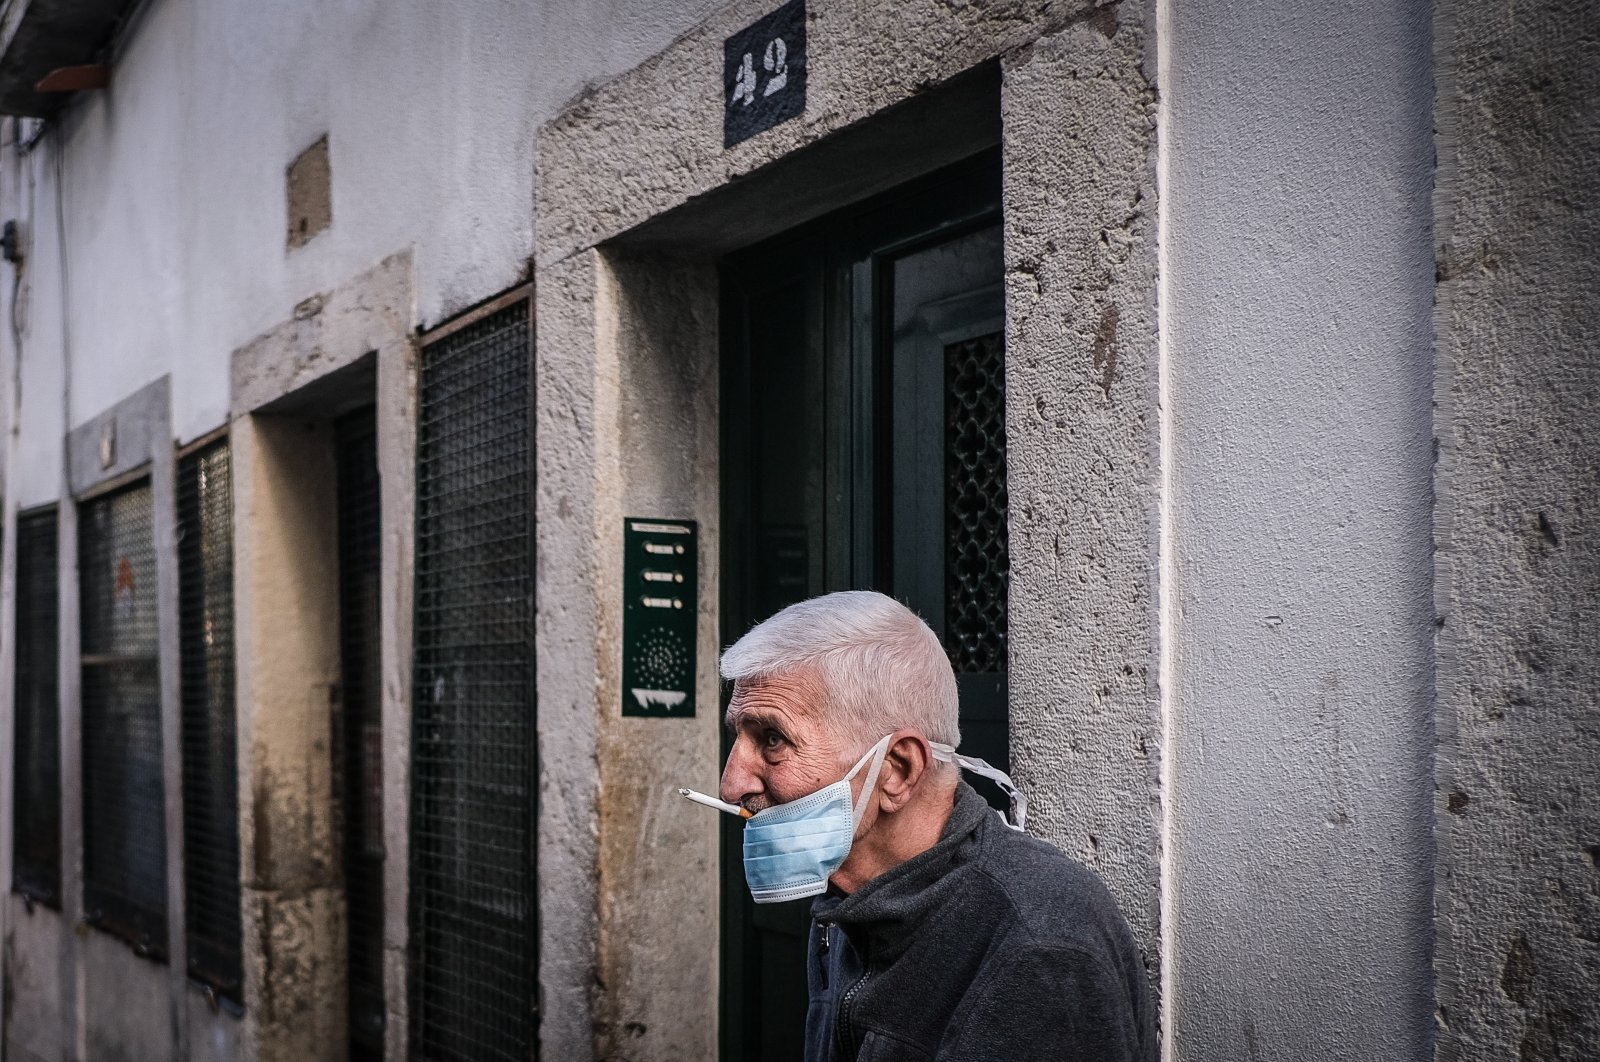 A man wearing a protective mask smokes a cigarette in the Alfama neighborhood in Lisbon, Portugal, Friday, April 3, 2020. (EPA Photo)